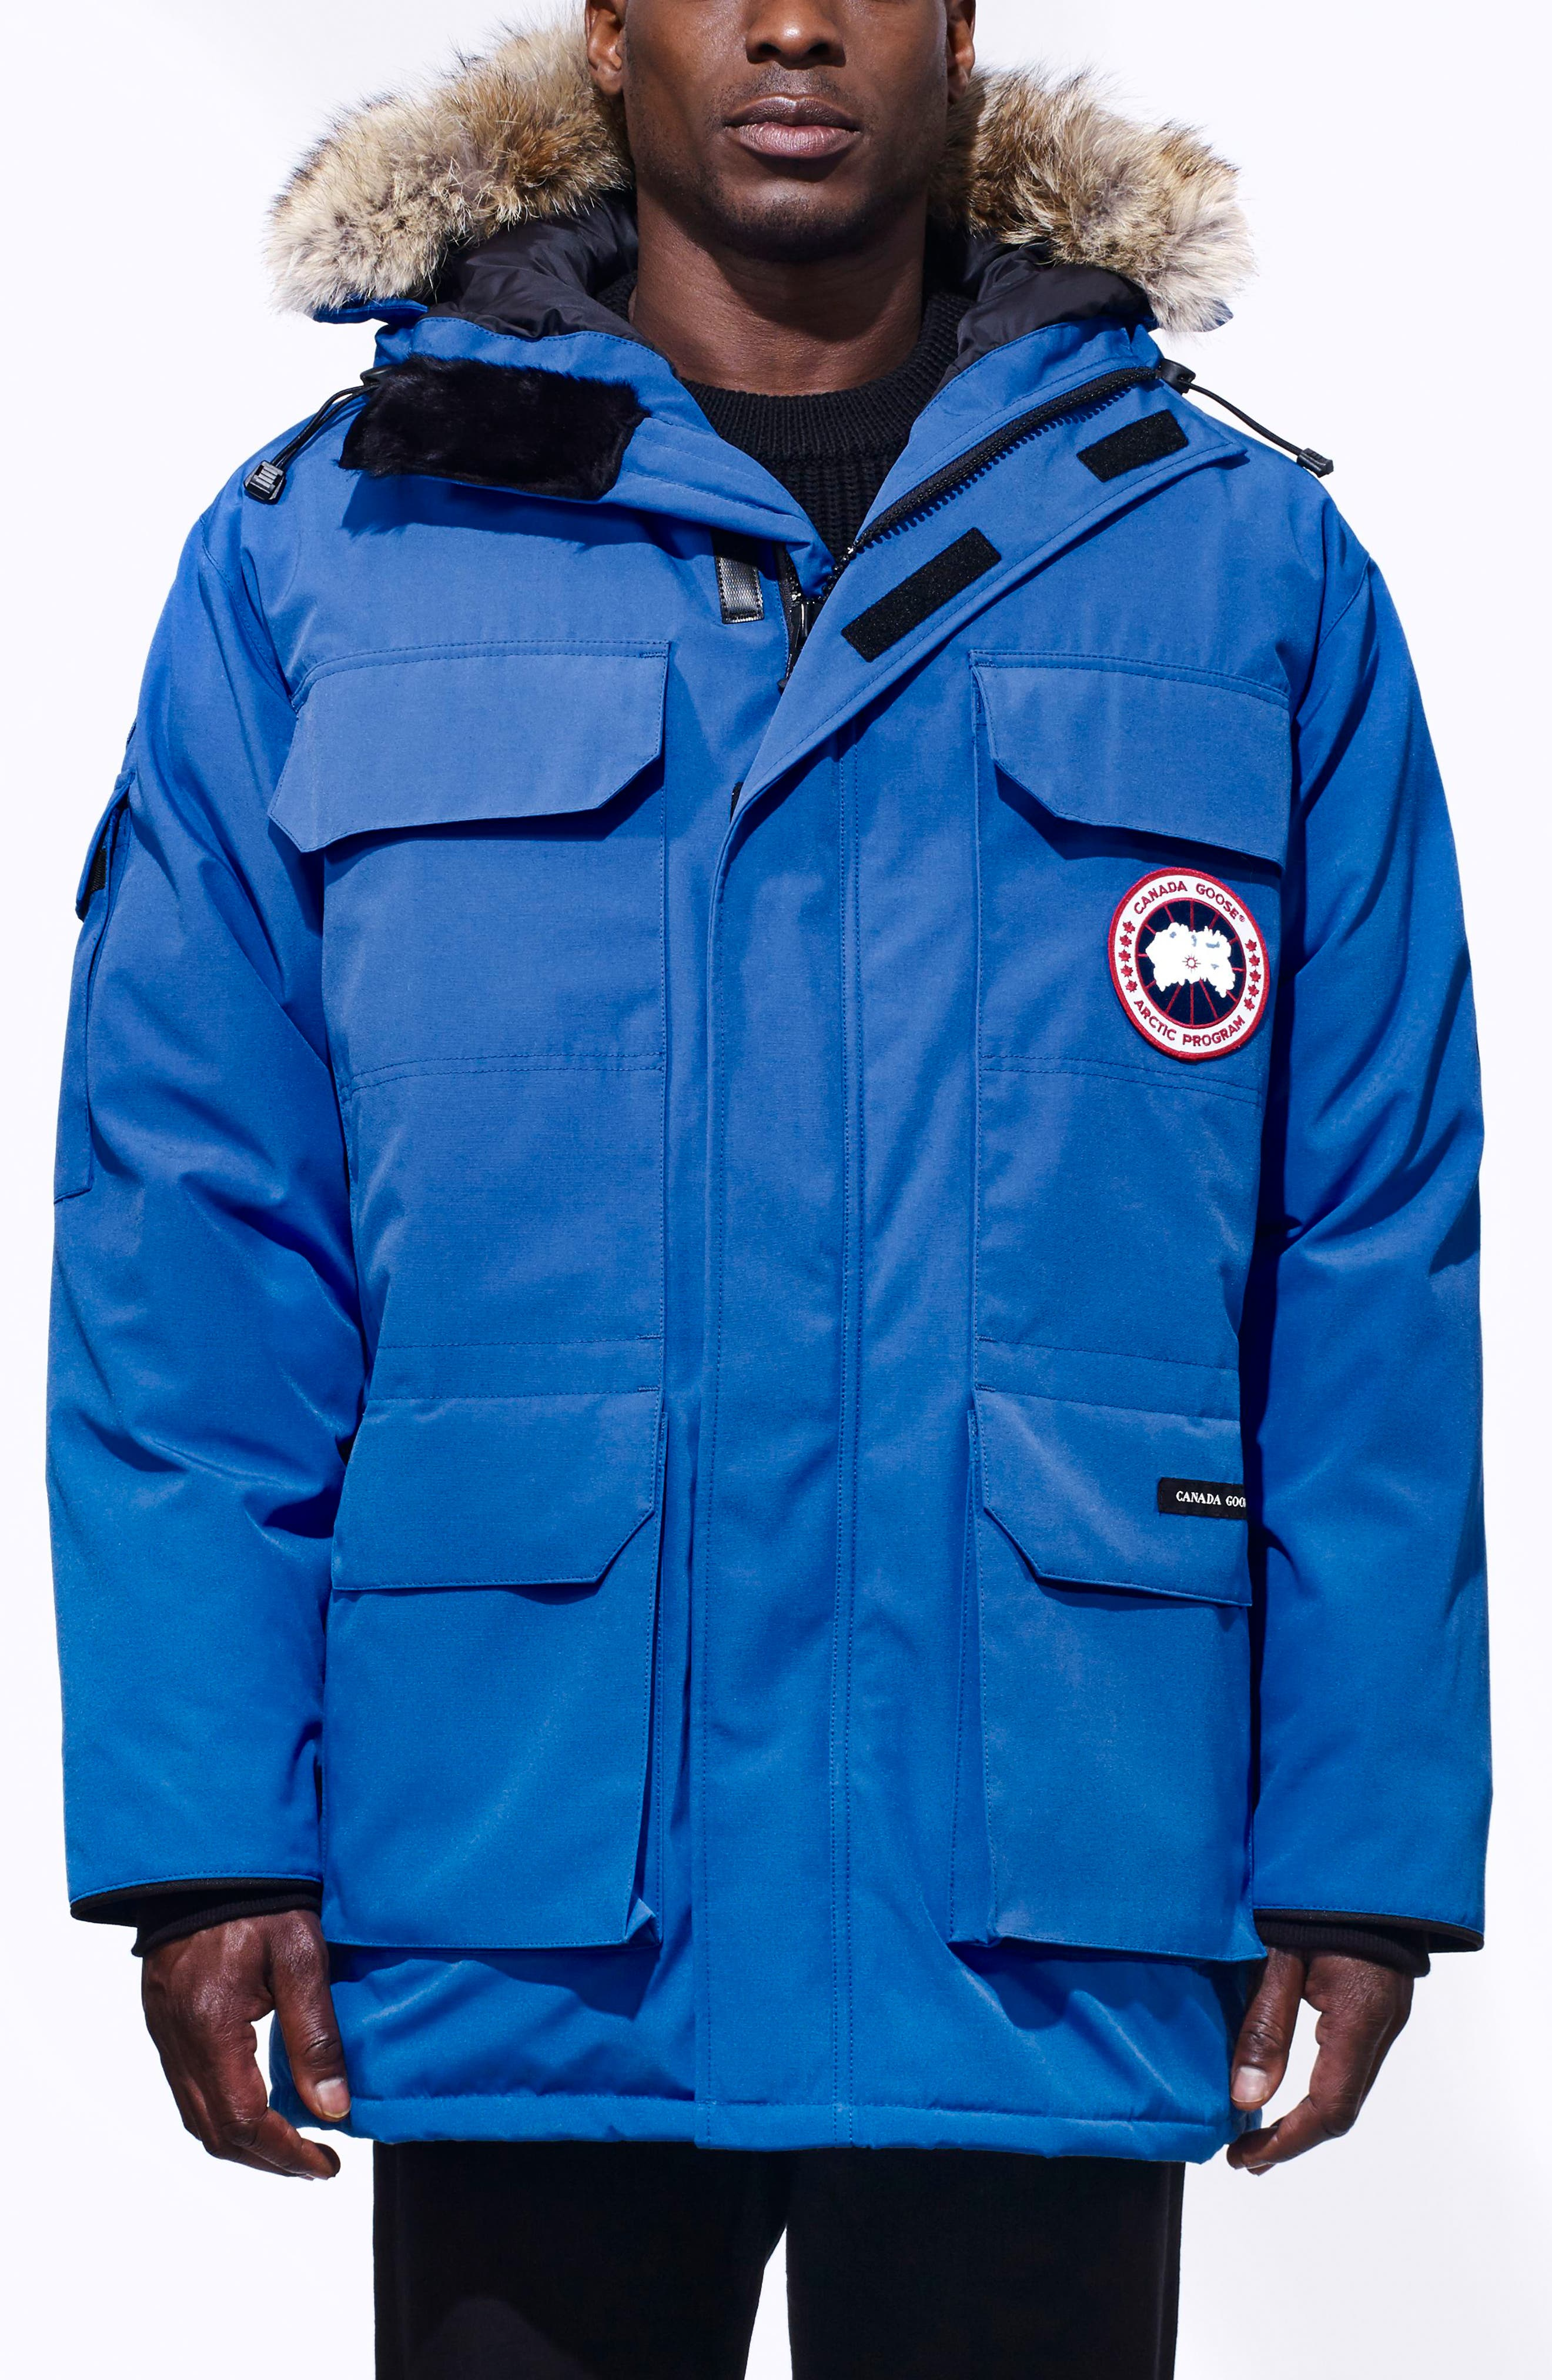 PBI Expedition Down Parka with Genuine Coyote Fur Trim,                             Main thumbnail 1, color,                             ROYAL PBI BLUE